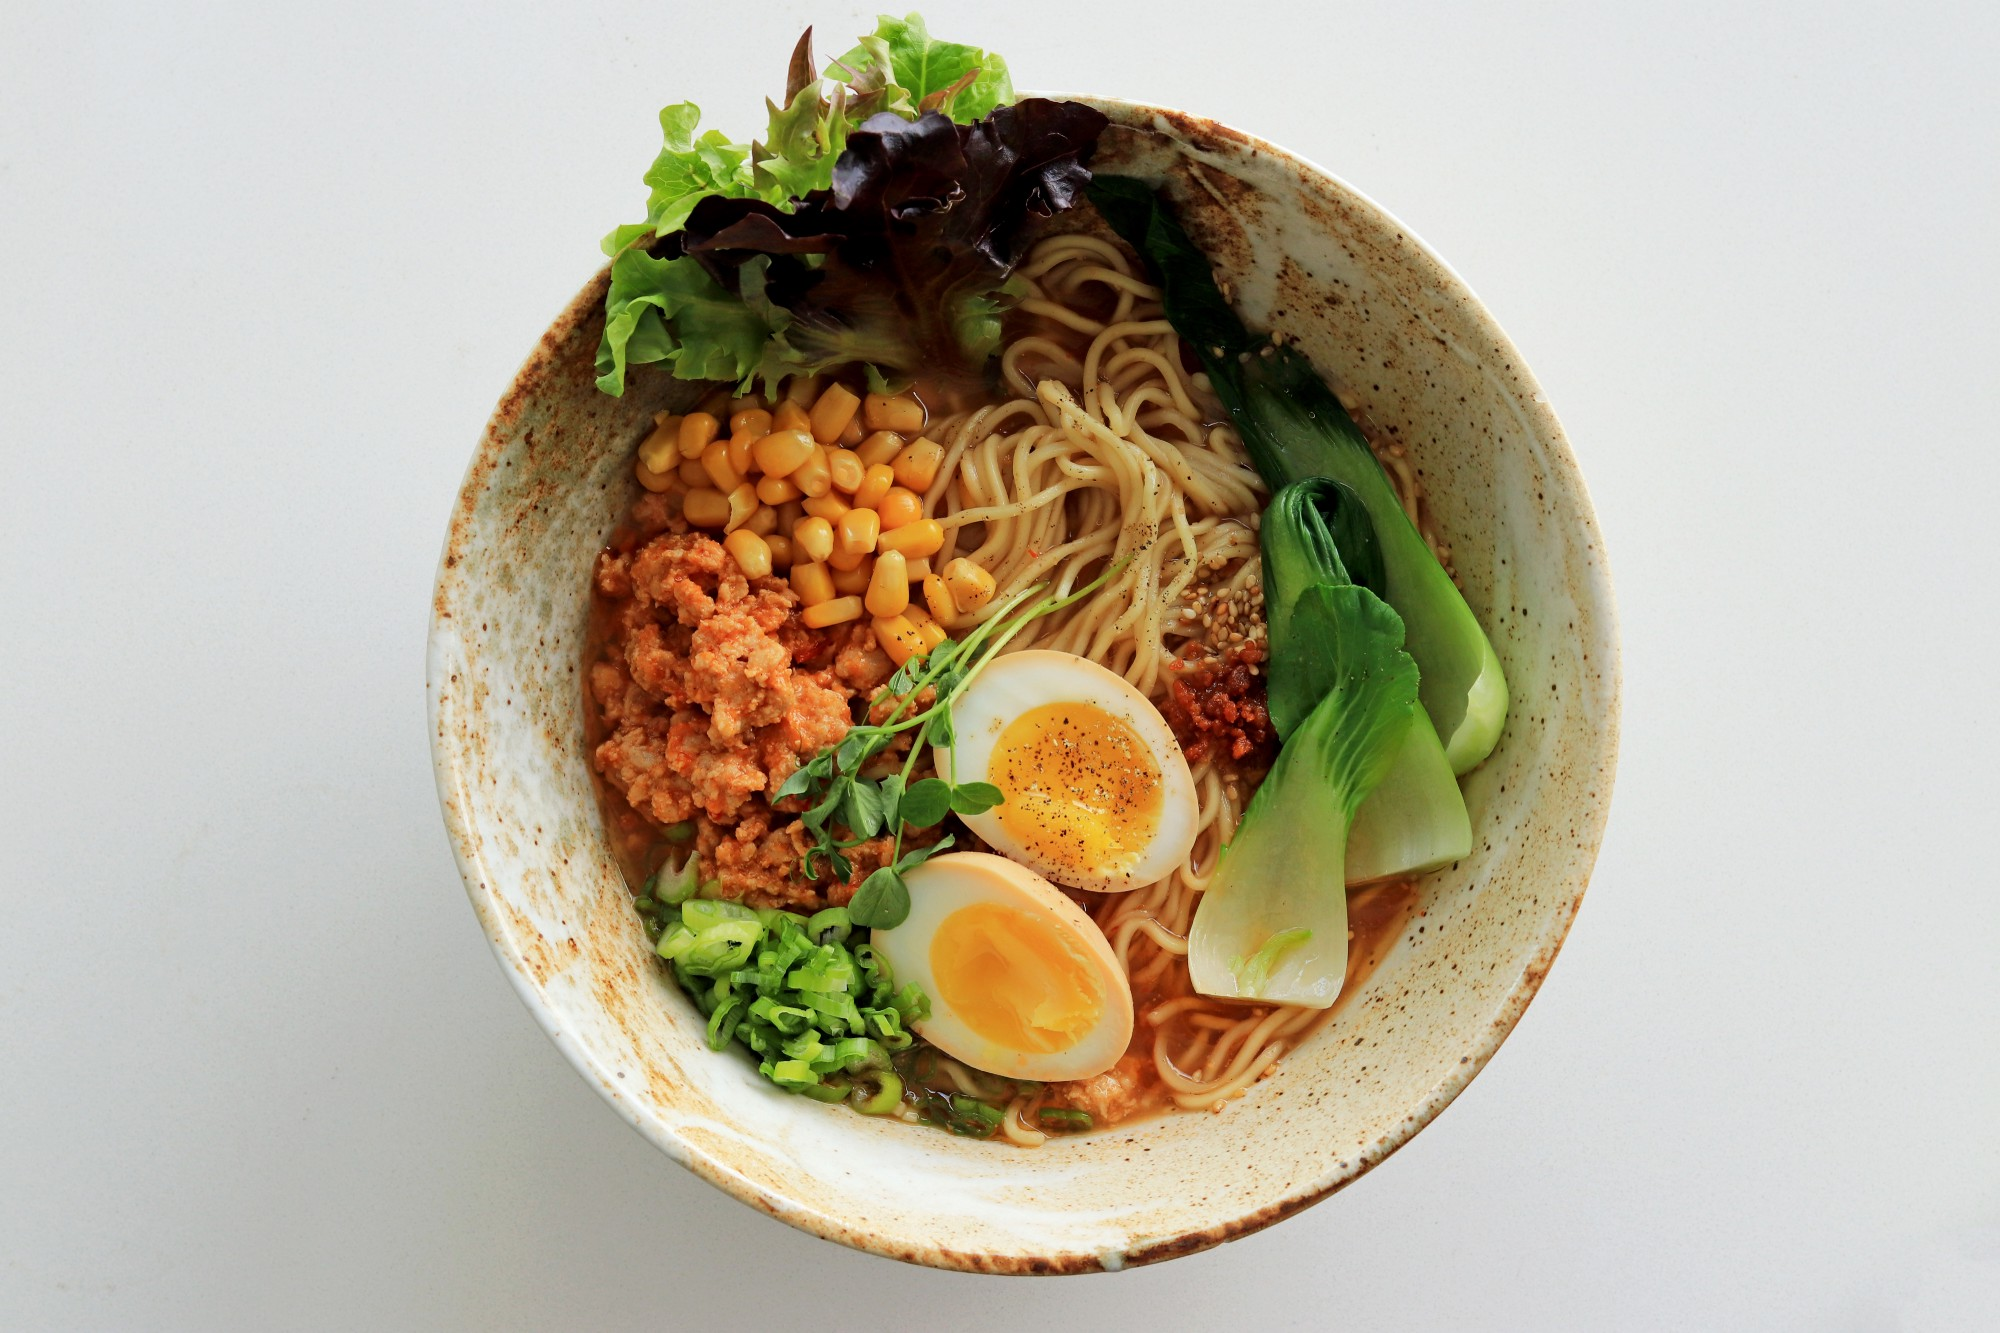 Ramen noodles with hardboiled egg, bok choy, lettuce, and other toppings.